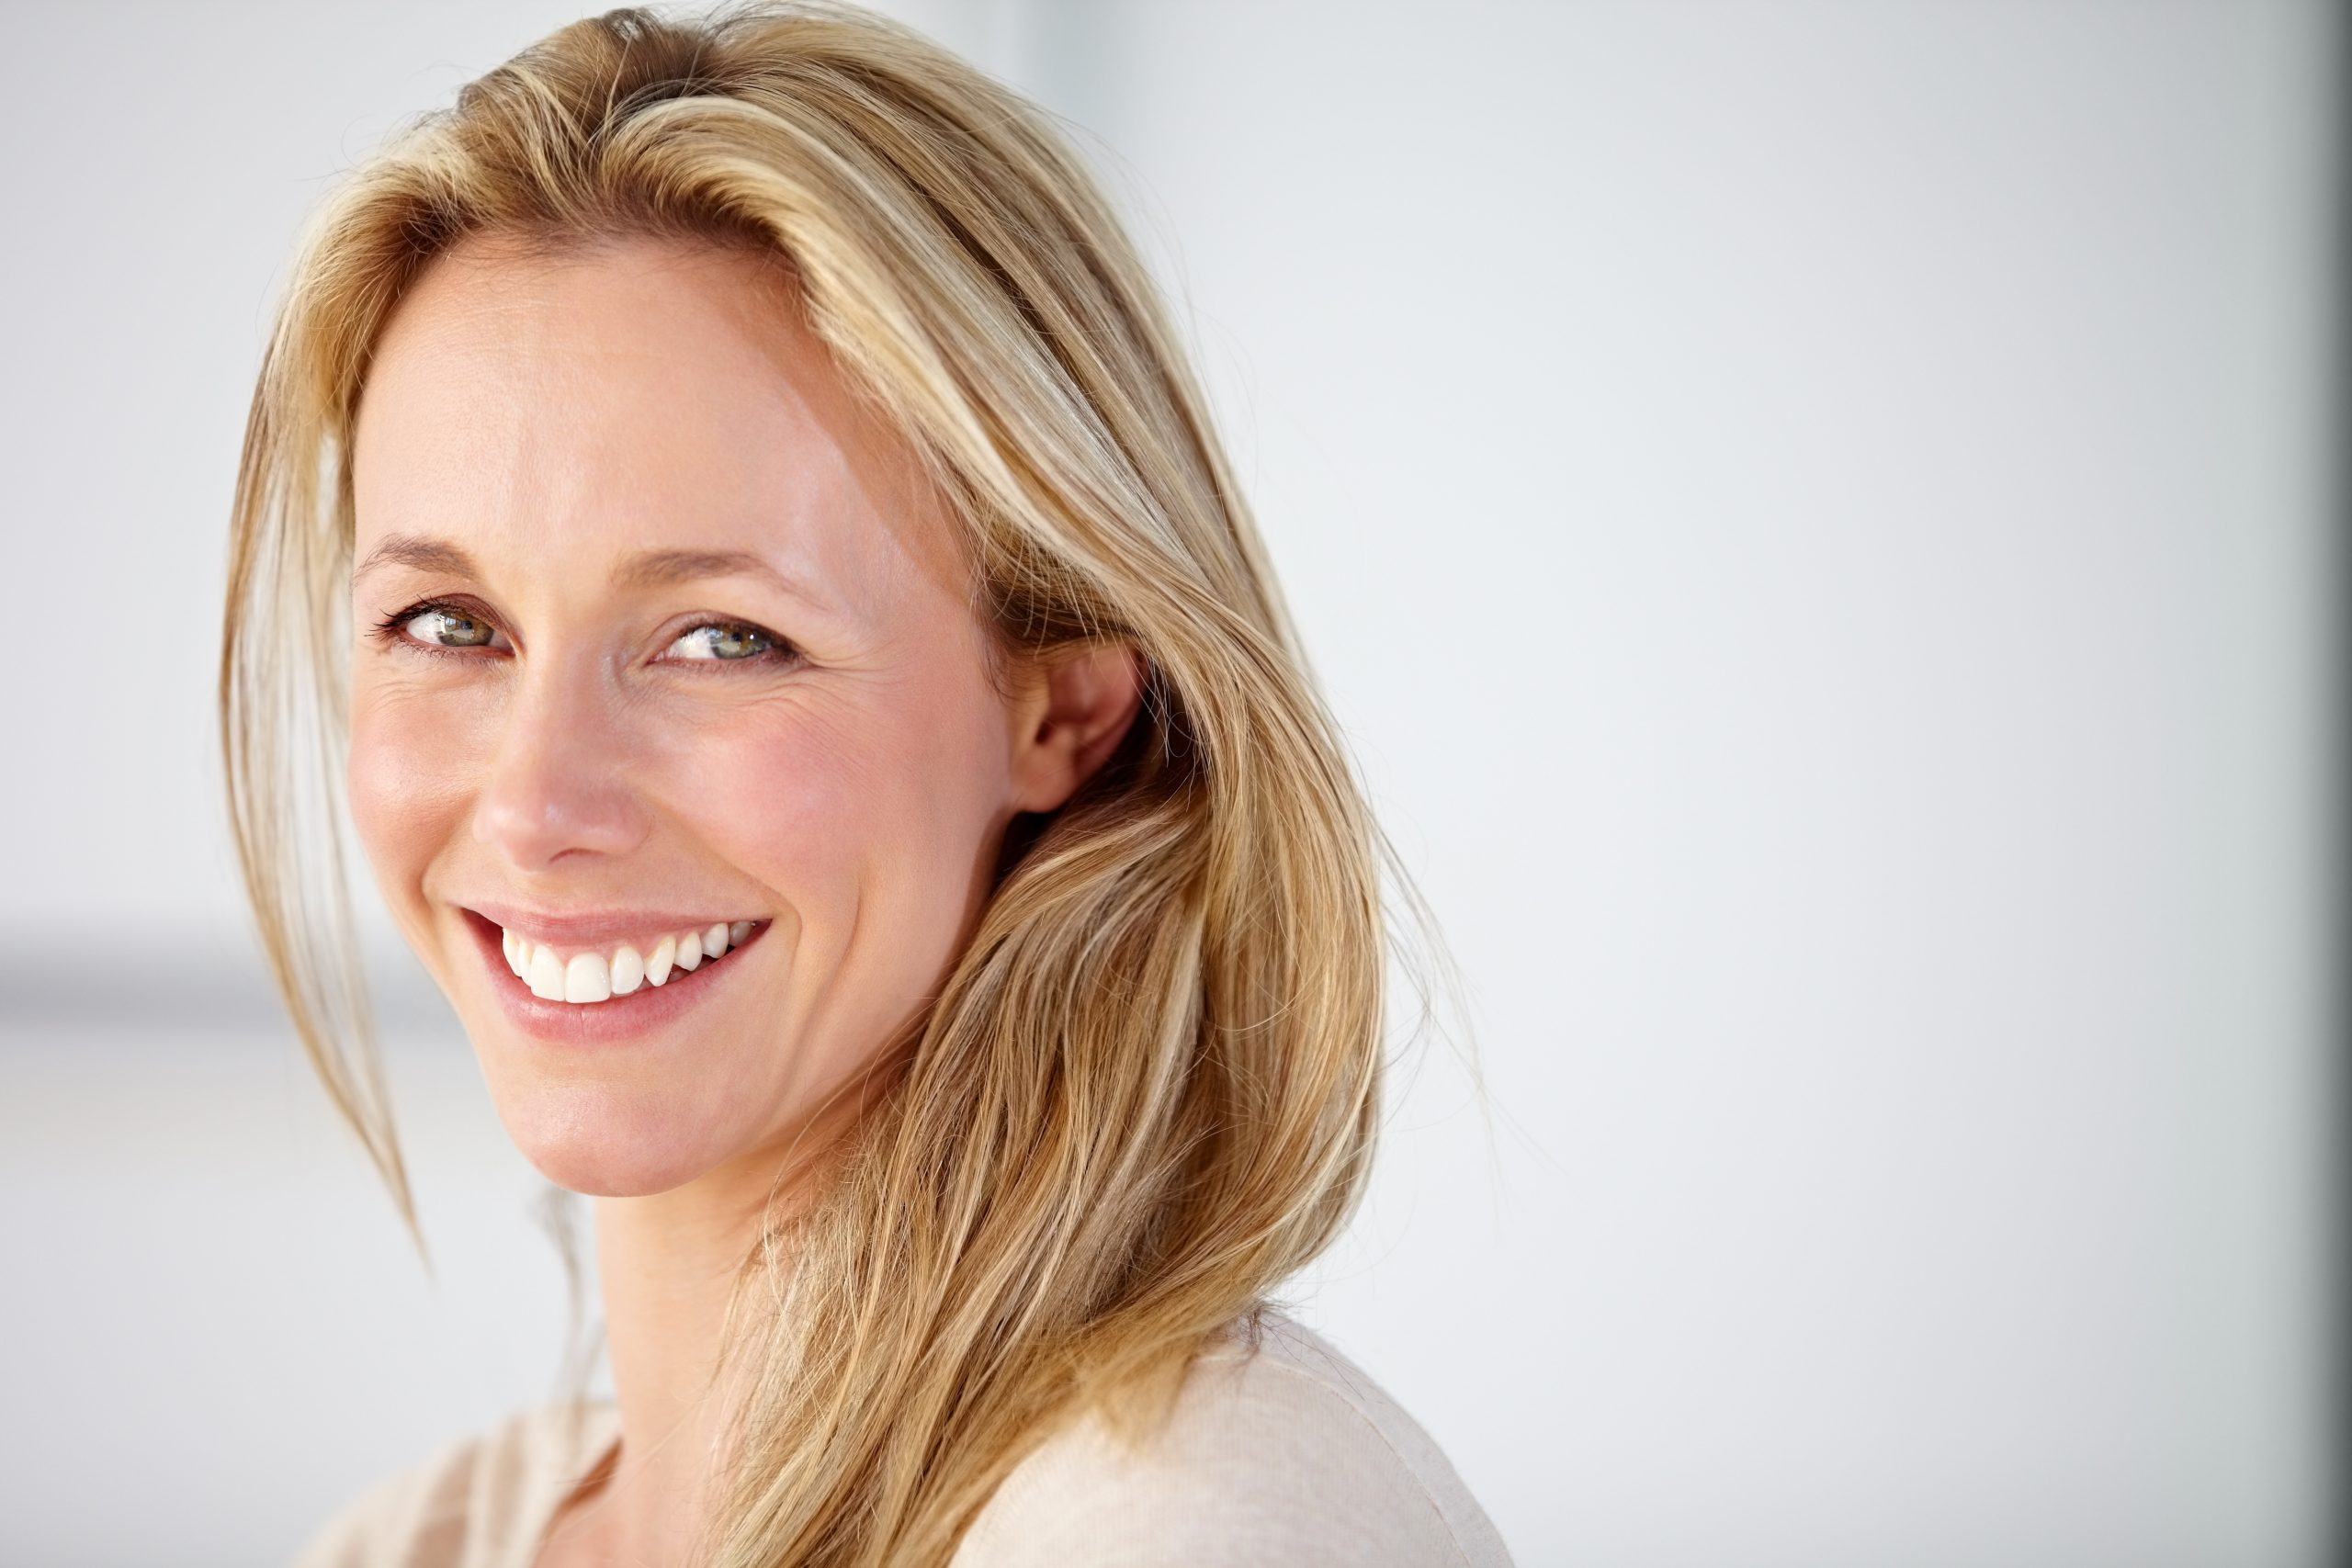 portrait of a blonde haired woman smiling against a white background